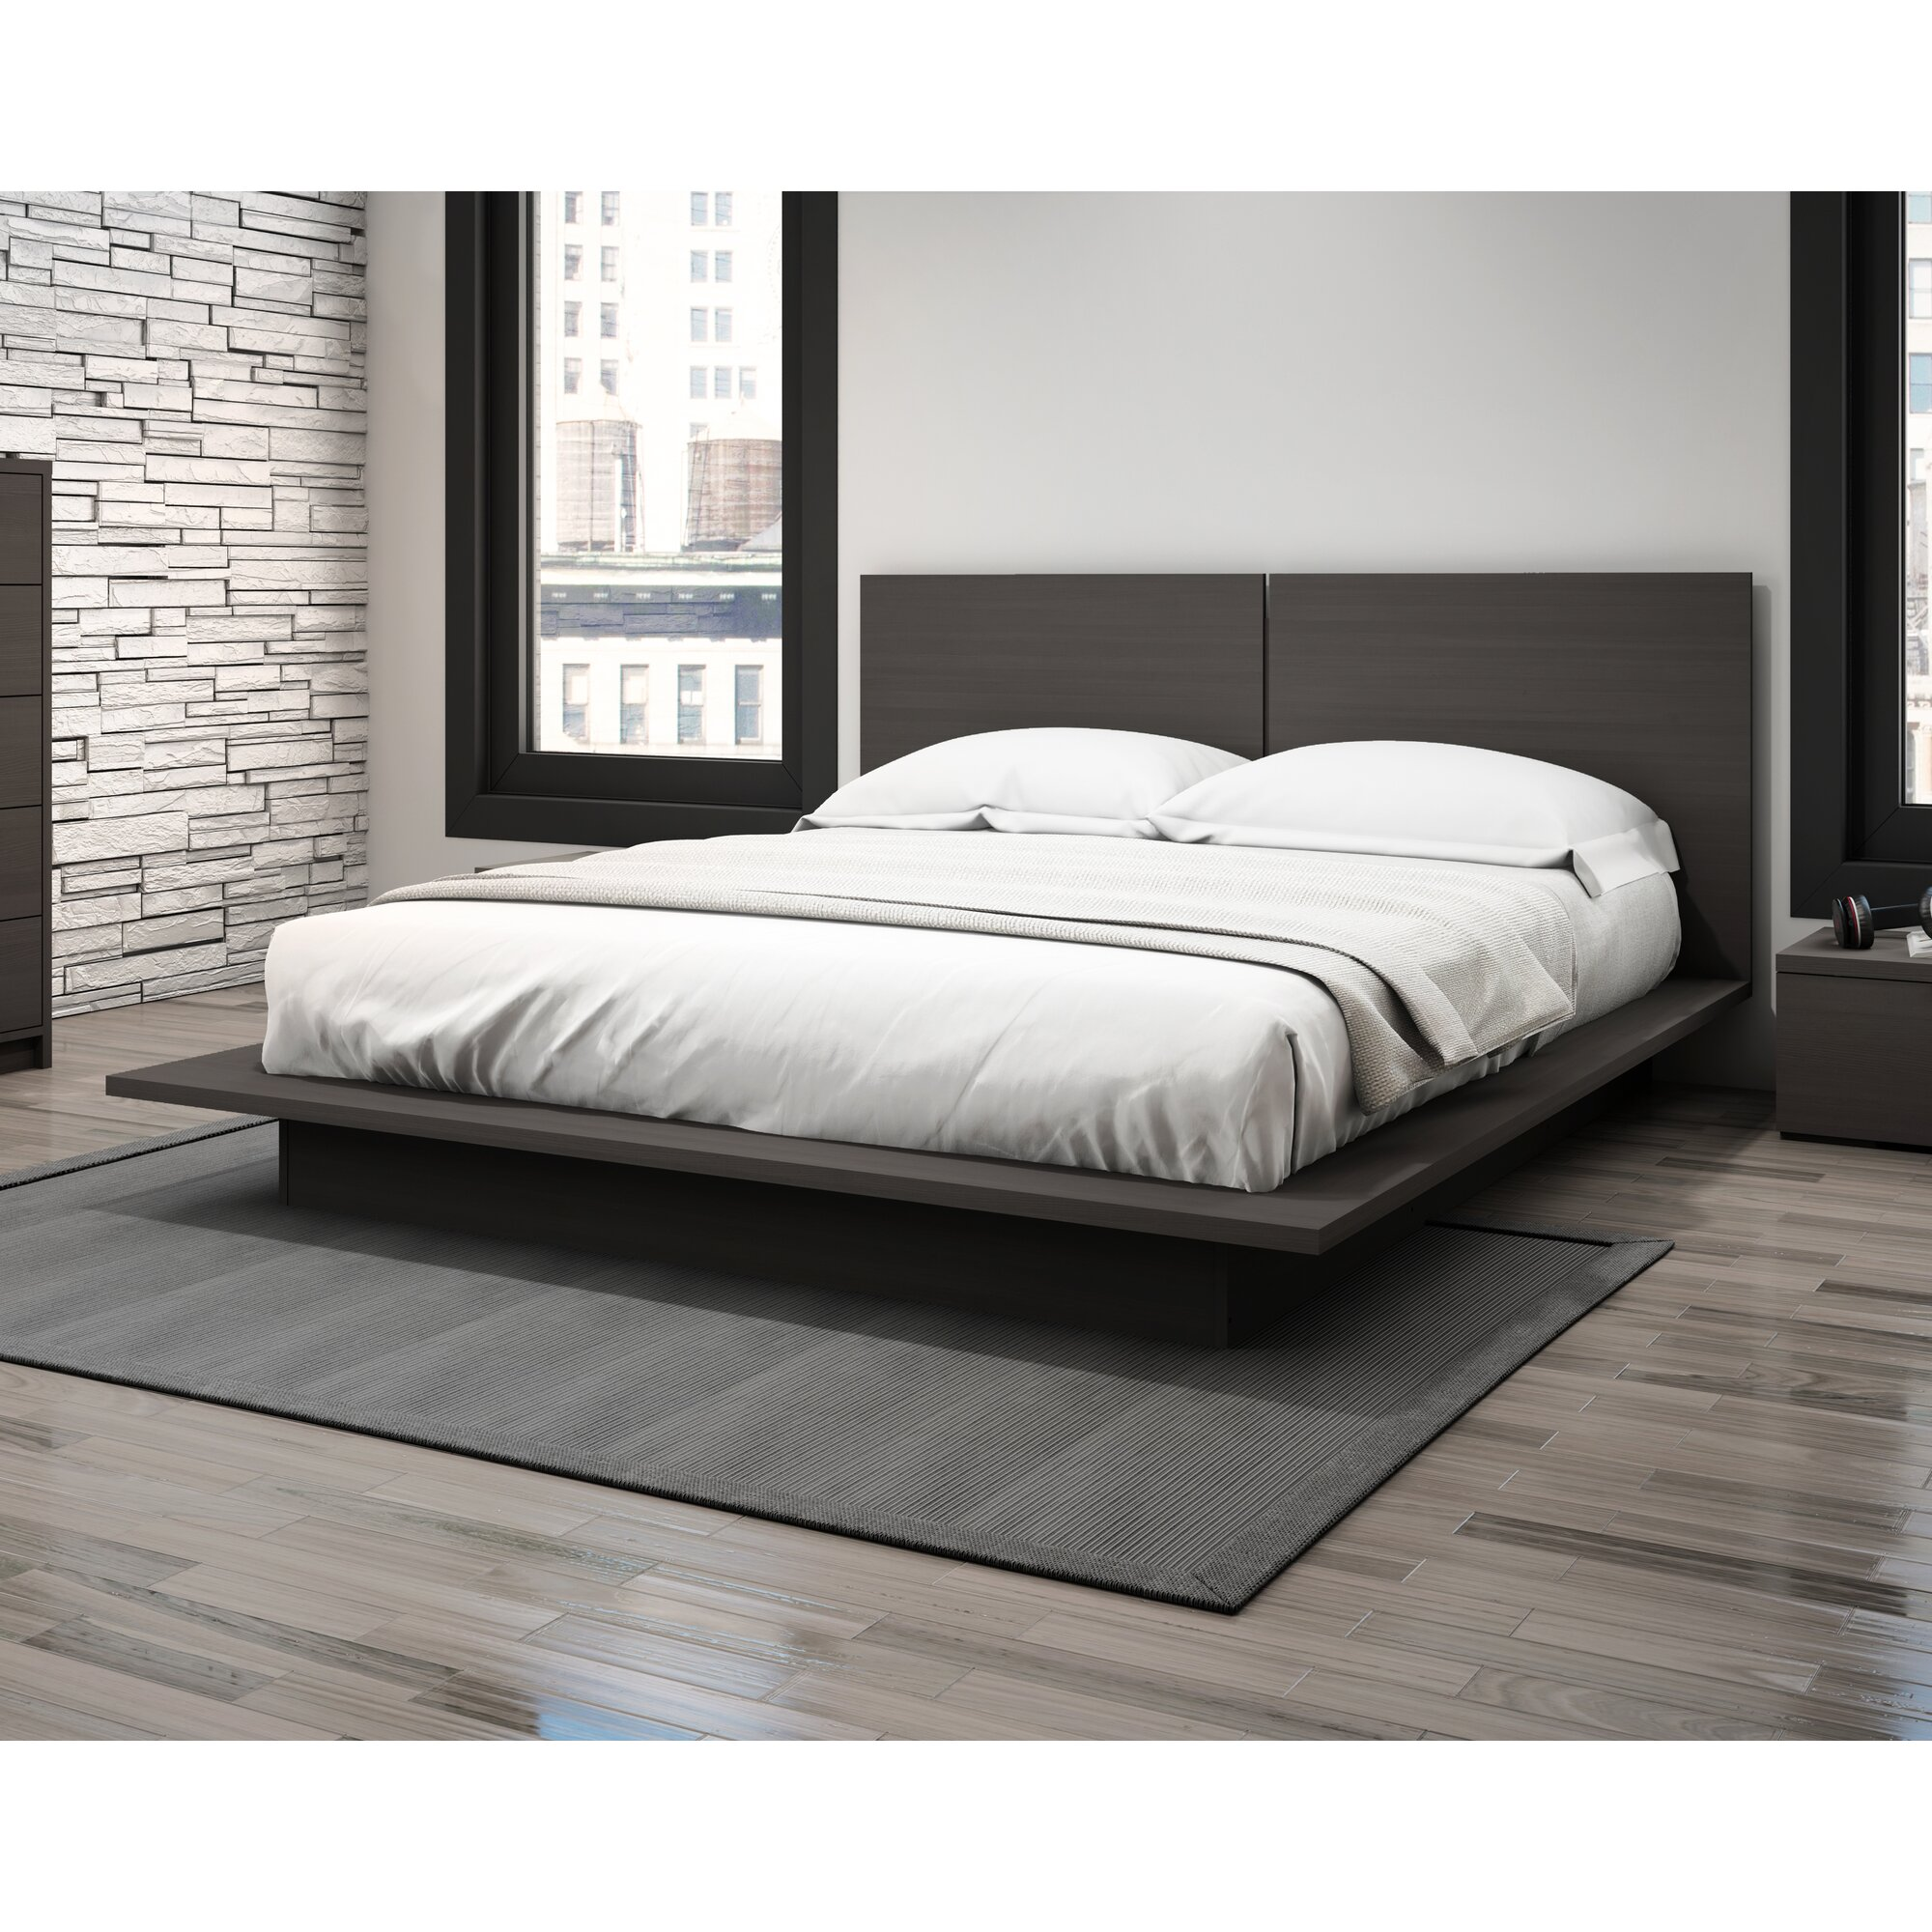 Cheap beds for sale near me bedroom large rug cheap with for Bedroom sets for sale near me